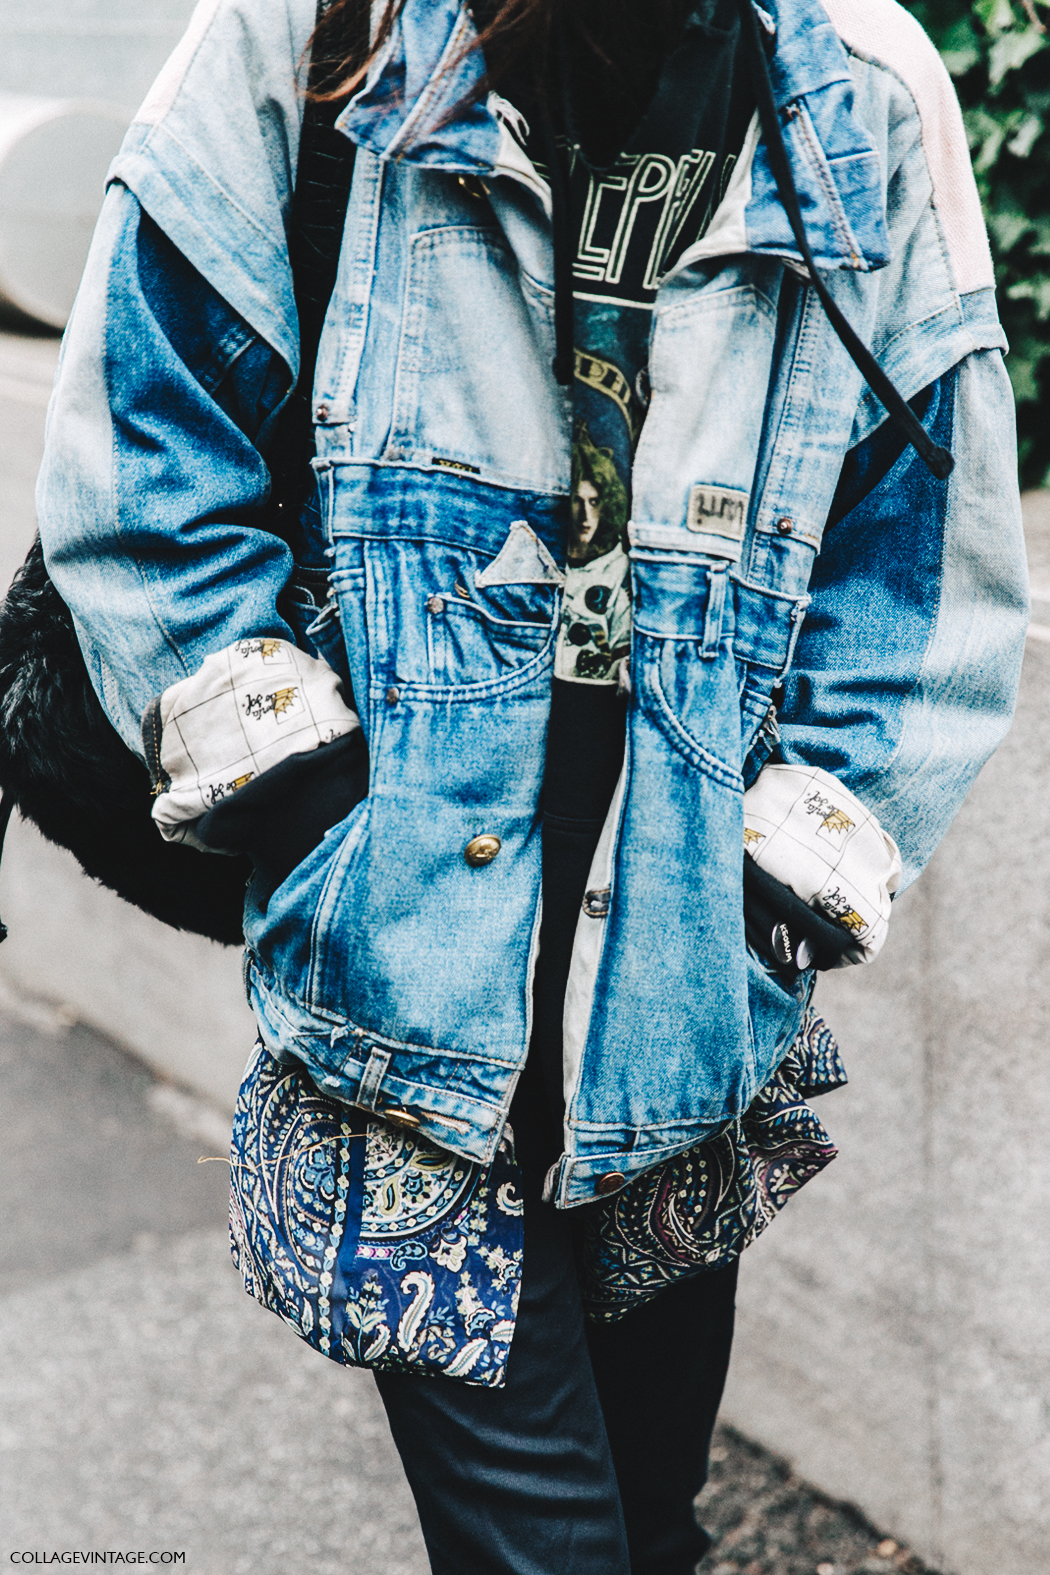 Milan_Fashion_Week_Fall_16-MFW-Street_Style-Collage_Vintage-Denim_Patchwork-1